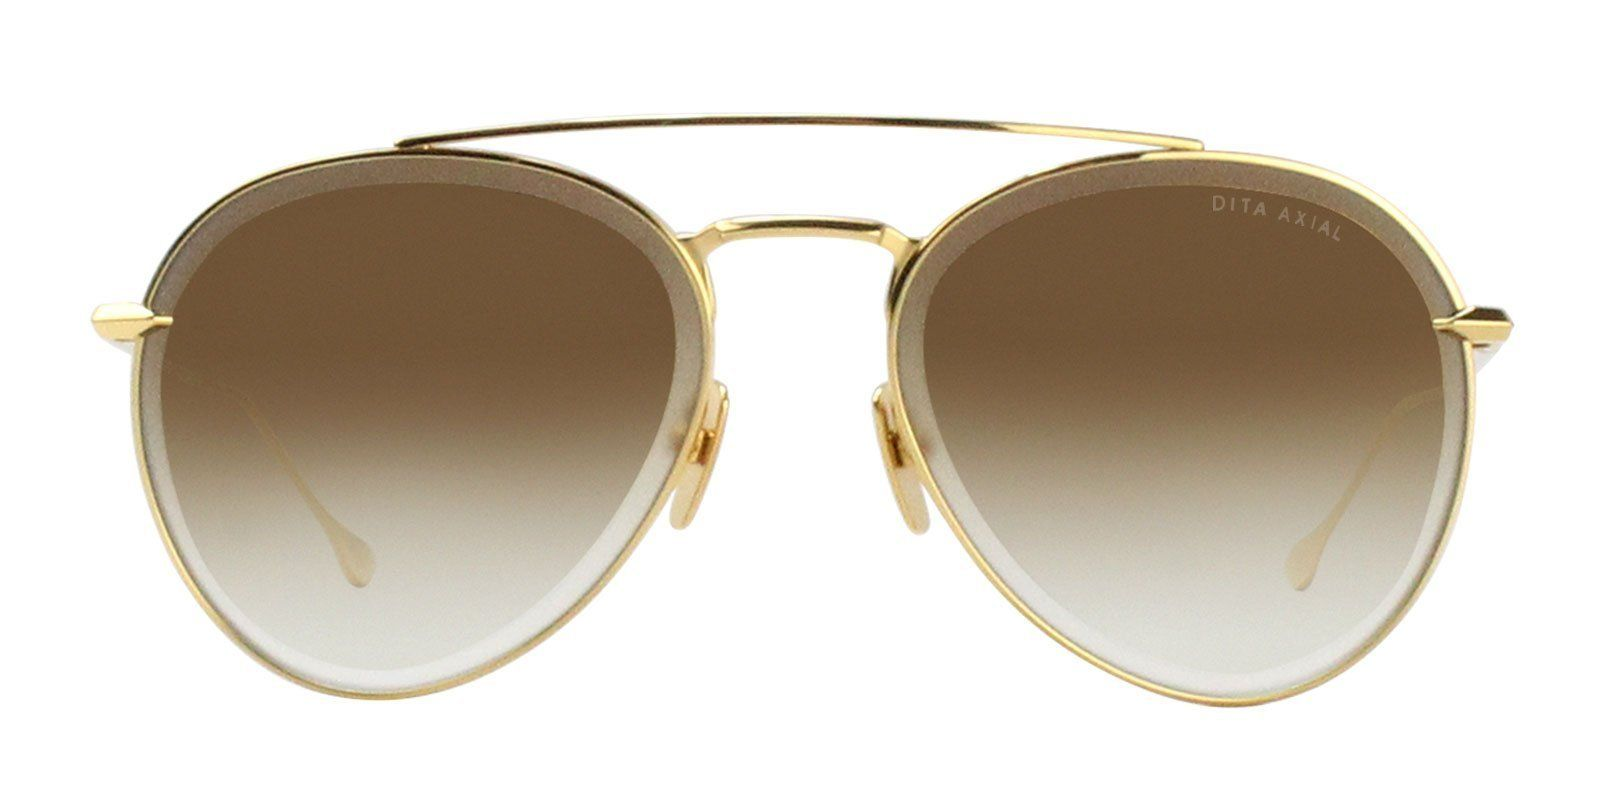 6ce3afe25a1 Dita - AXIAL Yellow Gold - Dark Brown to Clear - Gold Flash sunglasses